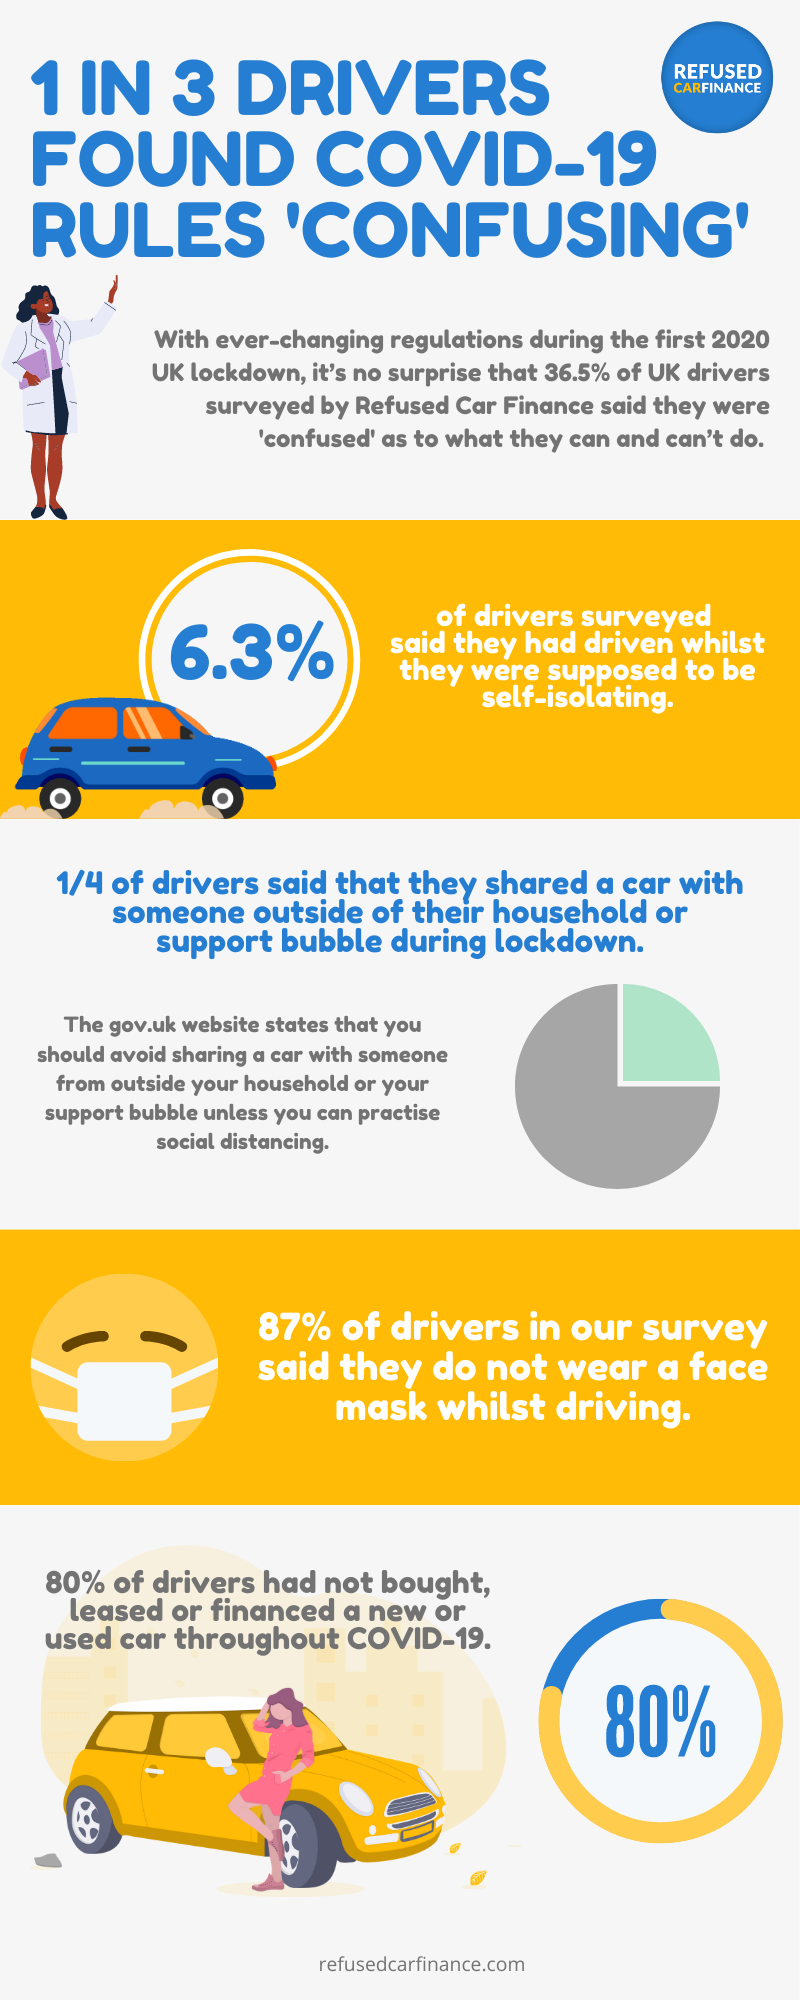 1 in 3 Drivers Found Covid-19 Rules Confusing #infographic #Transportation #Covid-19